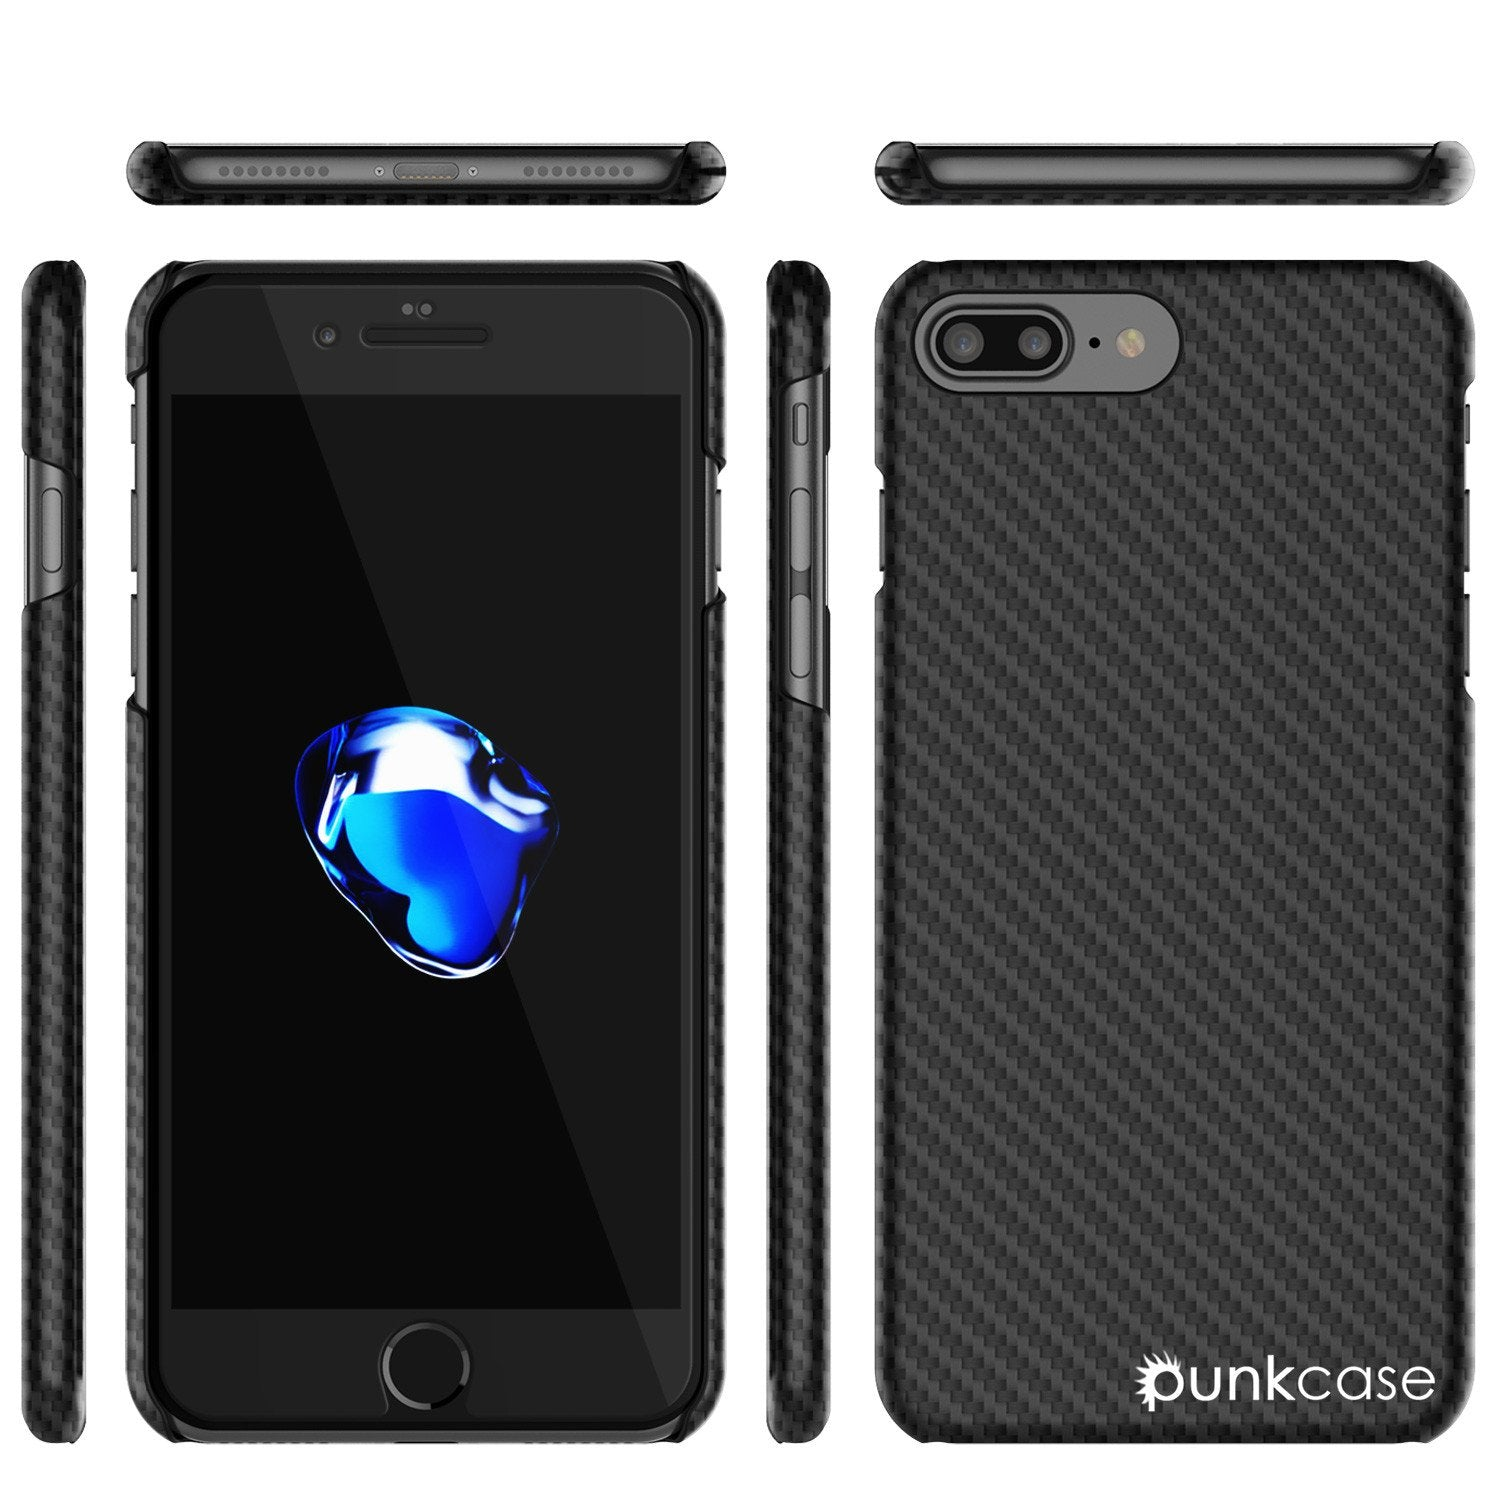 iPhone 7 Plus Case, Punkcase CarbonShield Jet Black with 0.3mm Tempered Glass